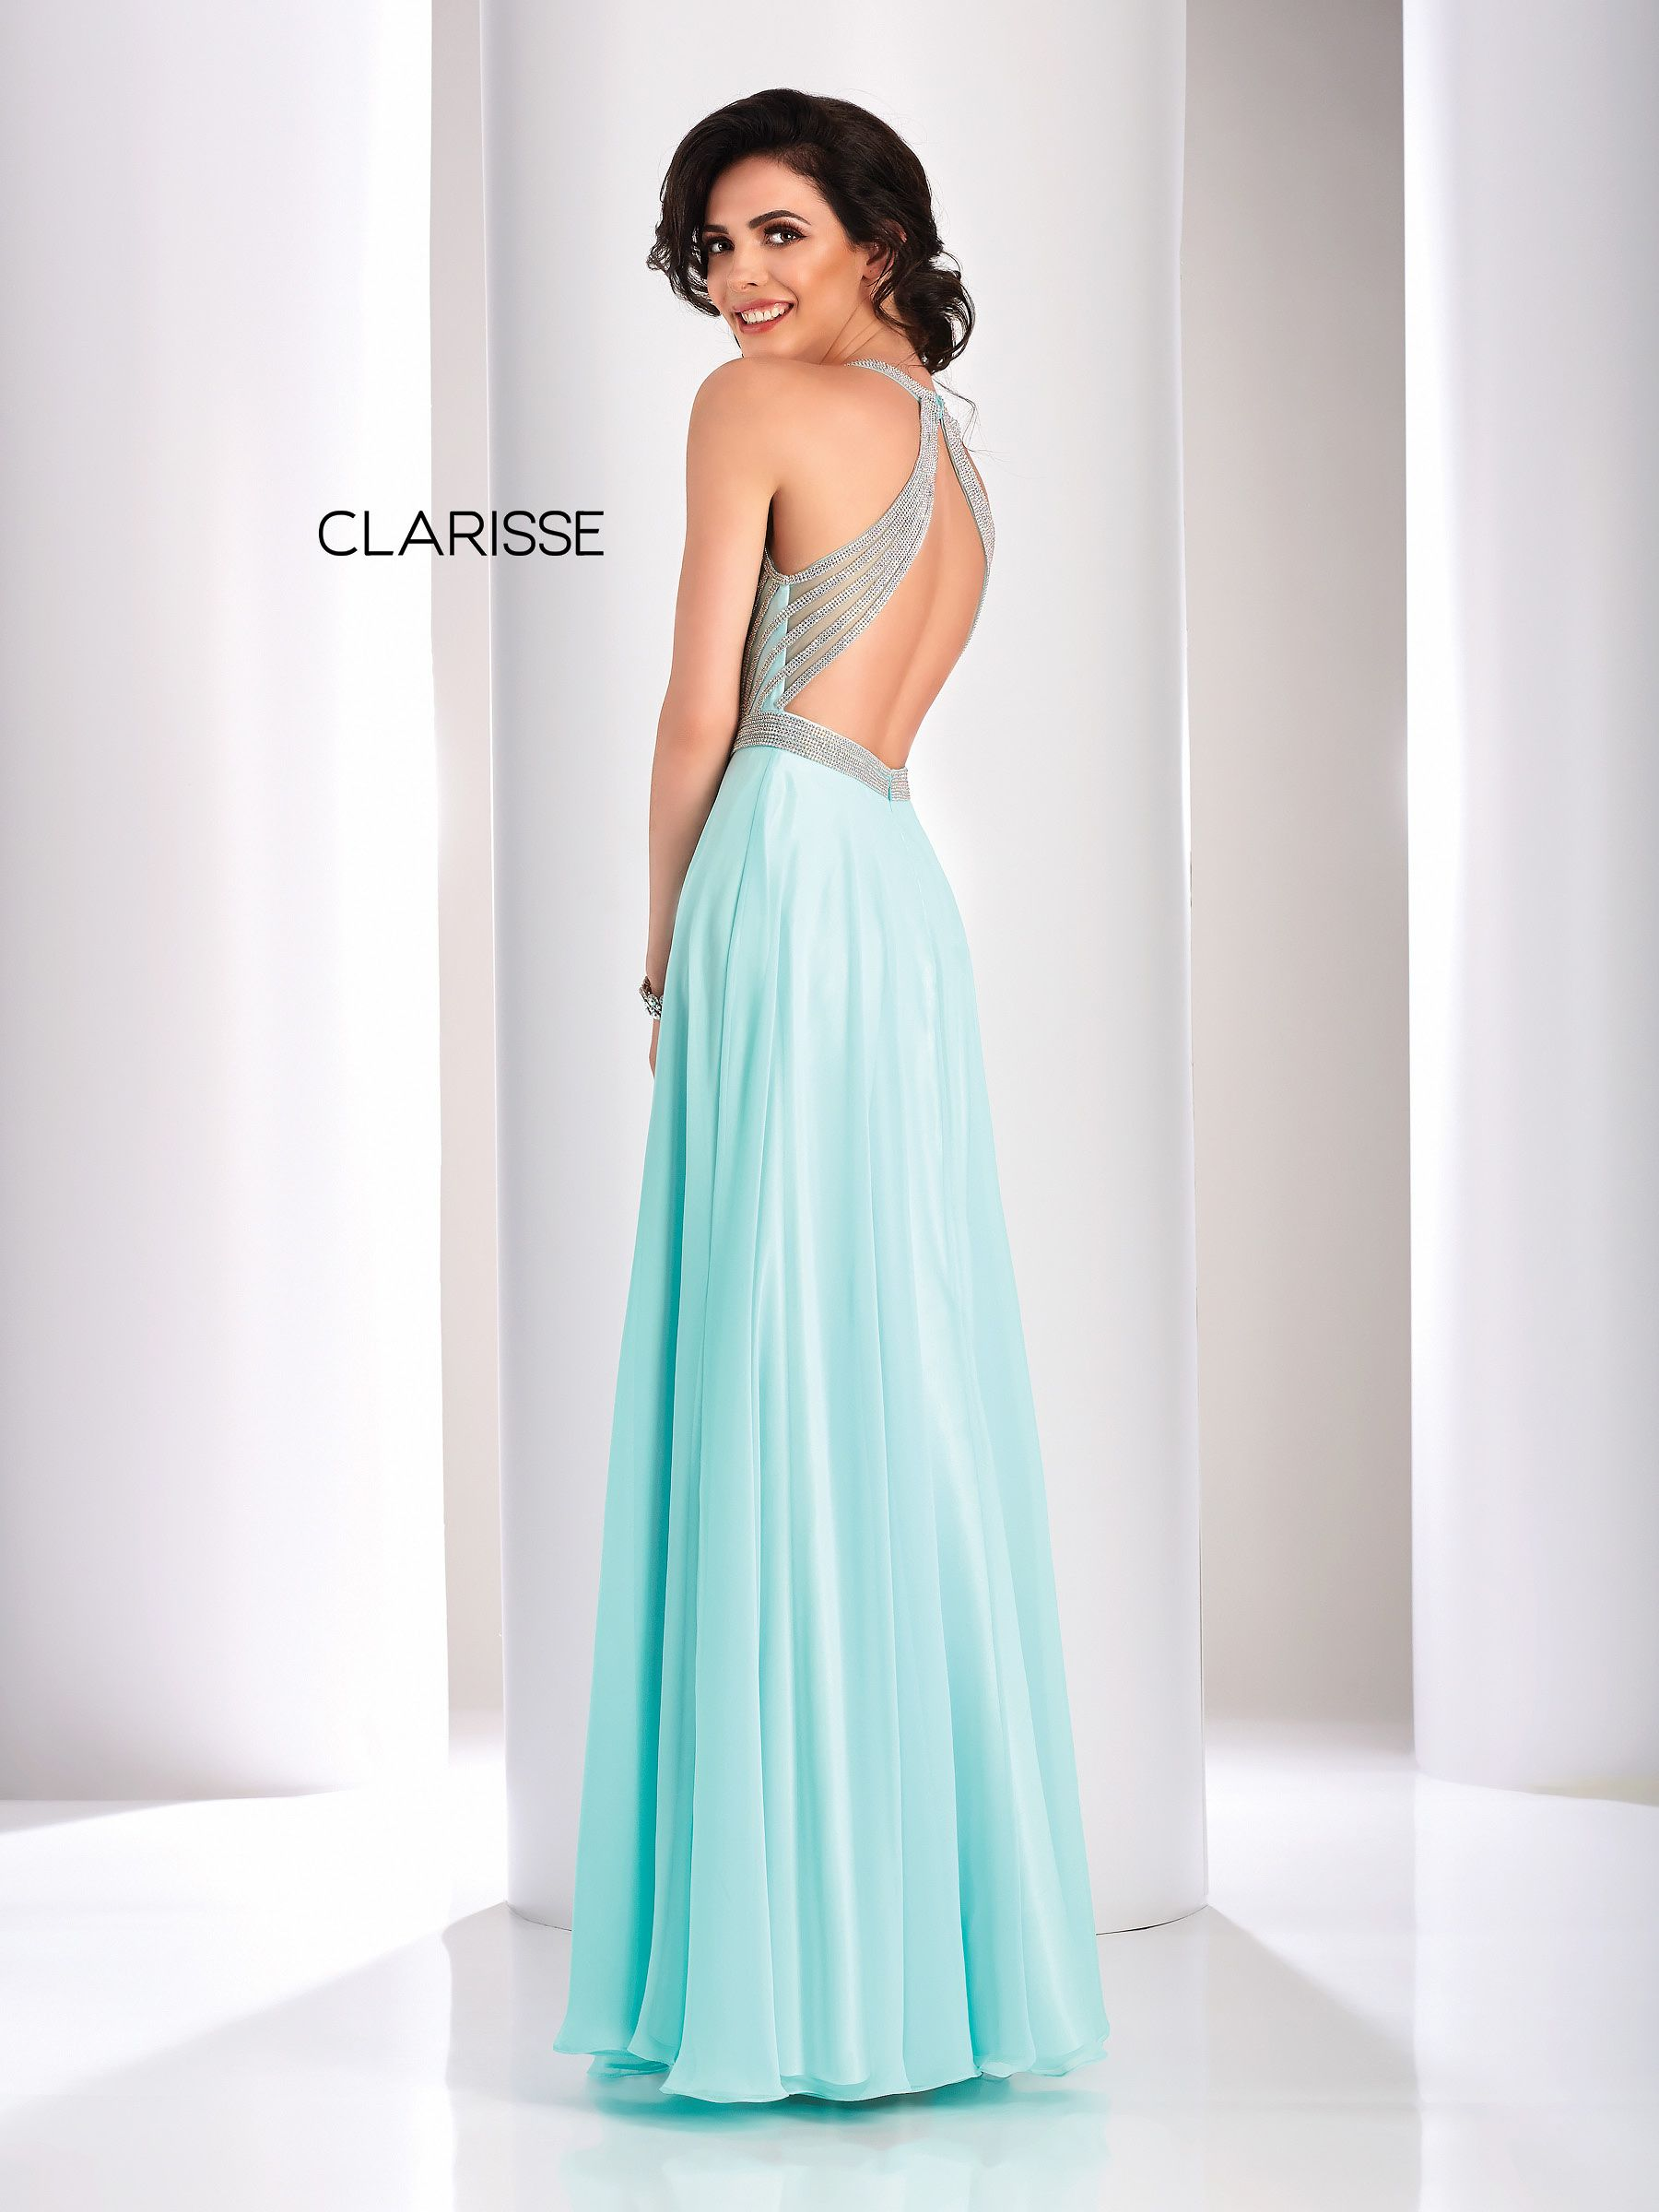 ea3057b52d 3068 - Seafoam green chiffon prom dress with a beaded strip top and open  back